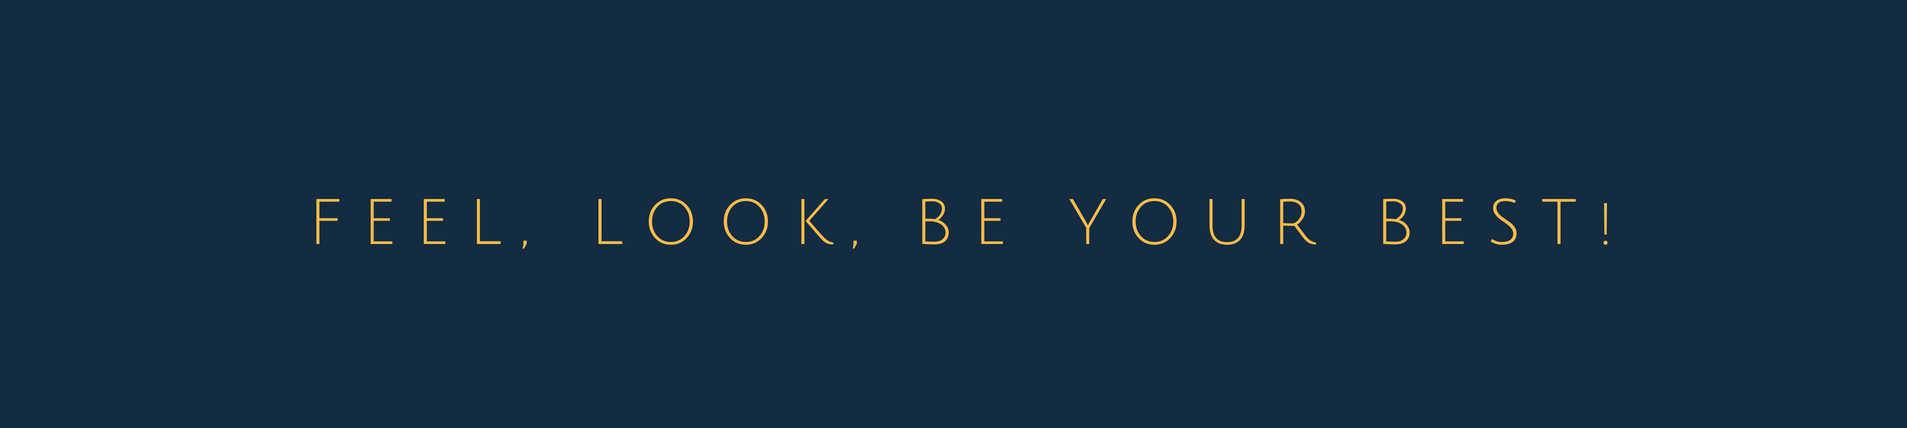 FEEL, LOOK, BE YOUR BEST!.png